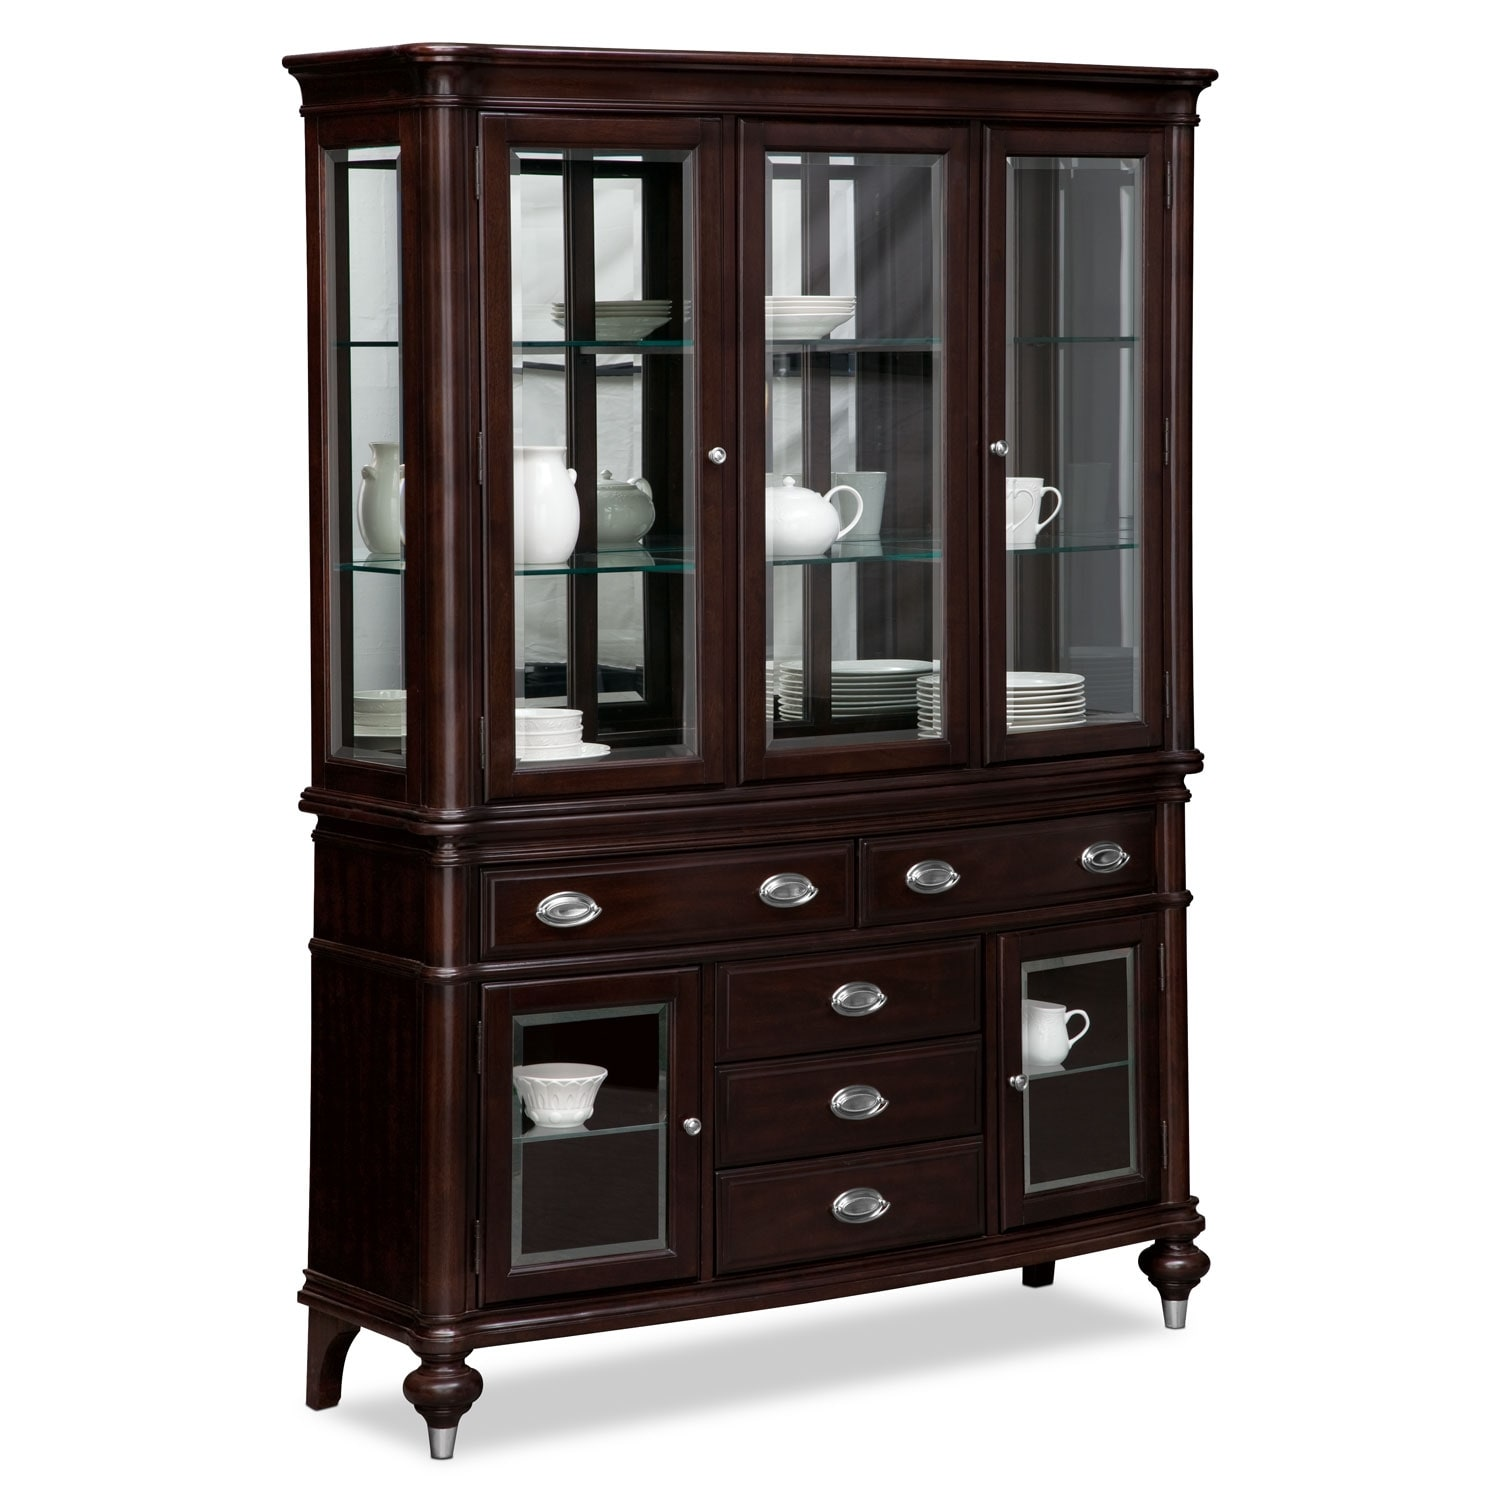 Esquire buffet and hutch cherry value city furniture for Dining room buffet